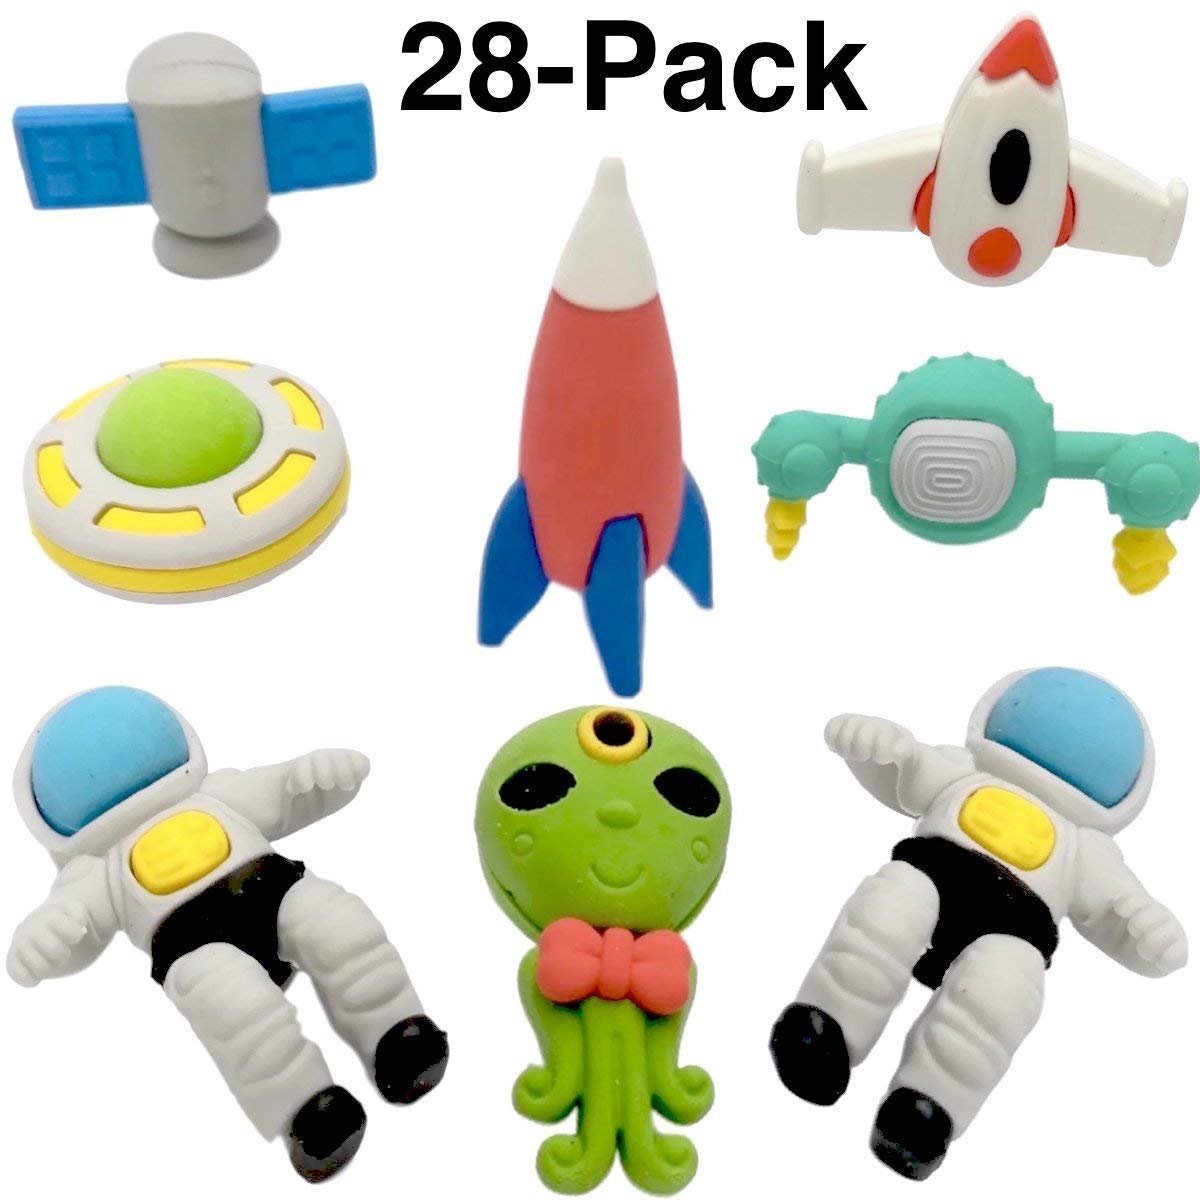 OHill Pack of 28 3D Outer Space Pencil Erasers Puzzle Erasers for Party Favors Supplies Classroom Treasure Box Prizes by OHill (Image #2)